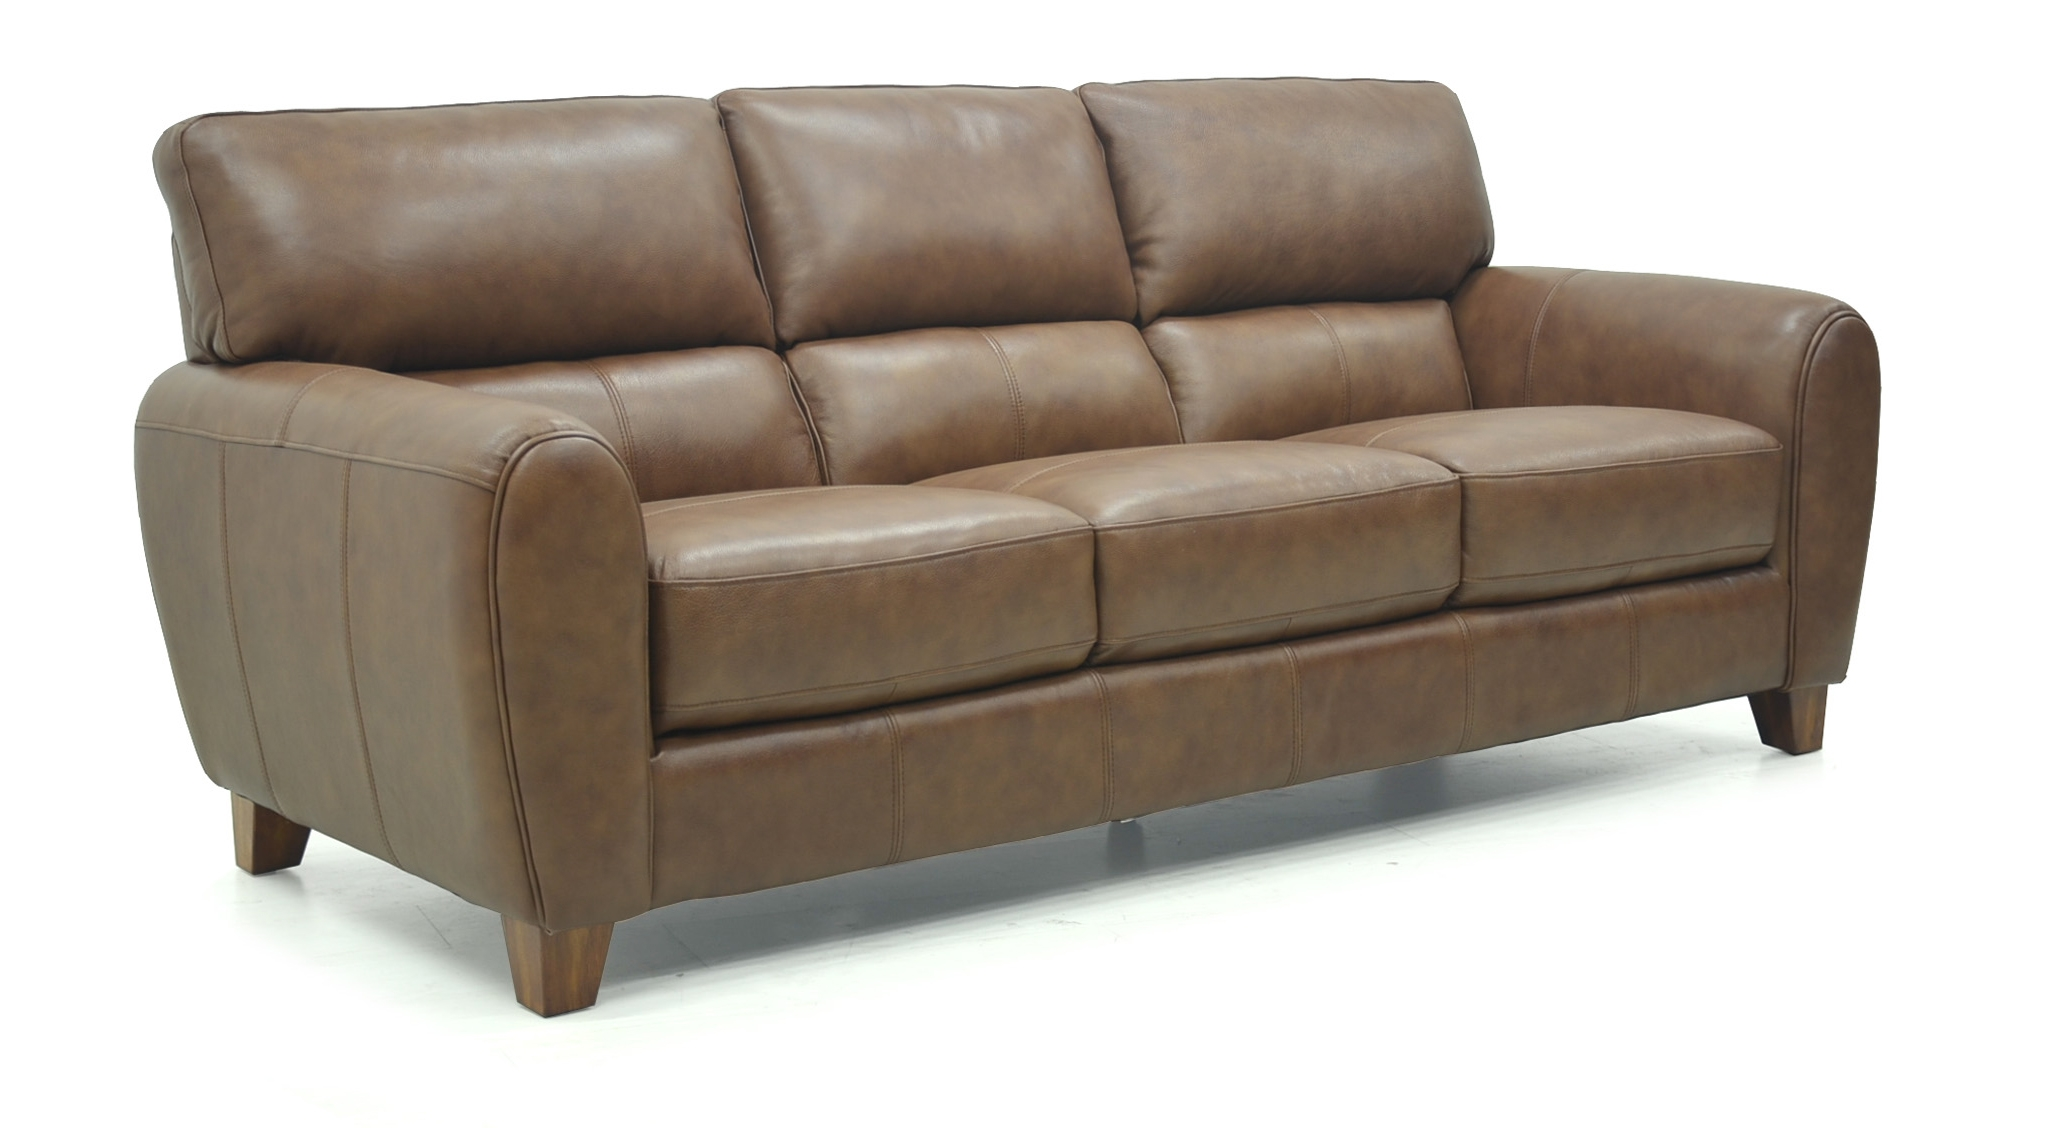 Canterbury Leather Sofa And Chair Range Pertaining To Canterbury Leather Sofas (Image 5 of 15)